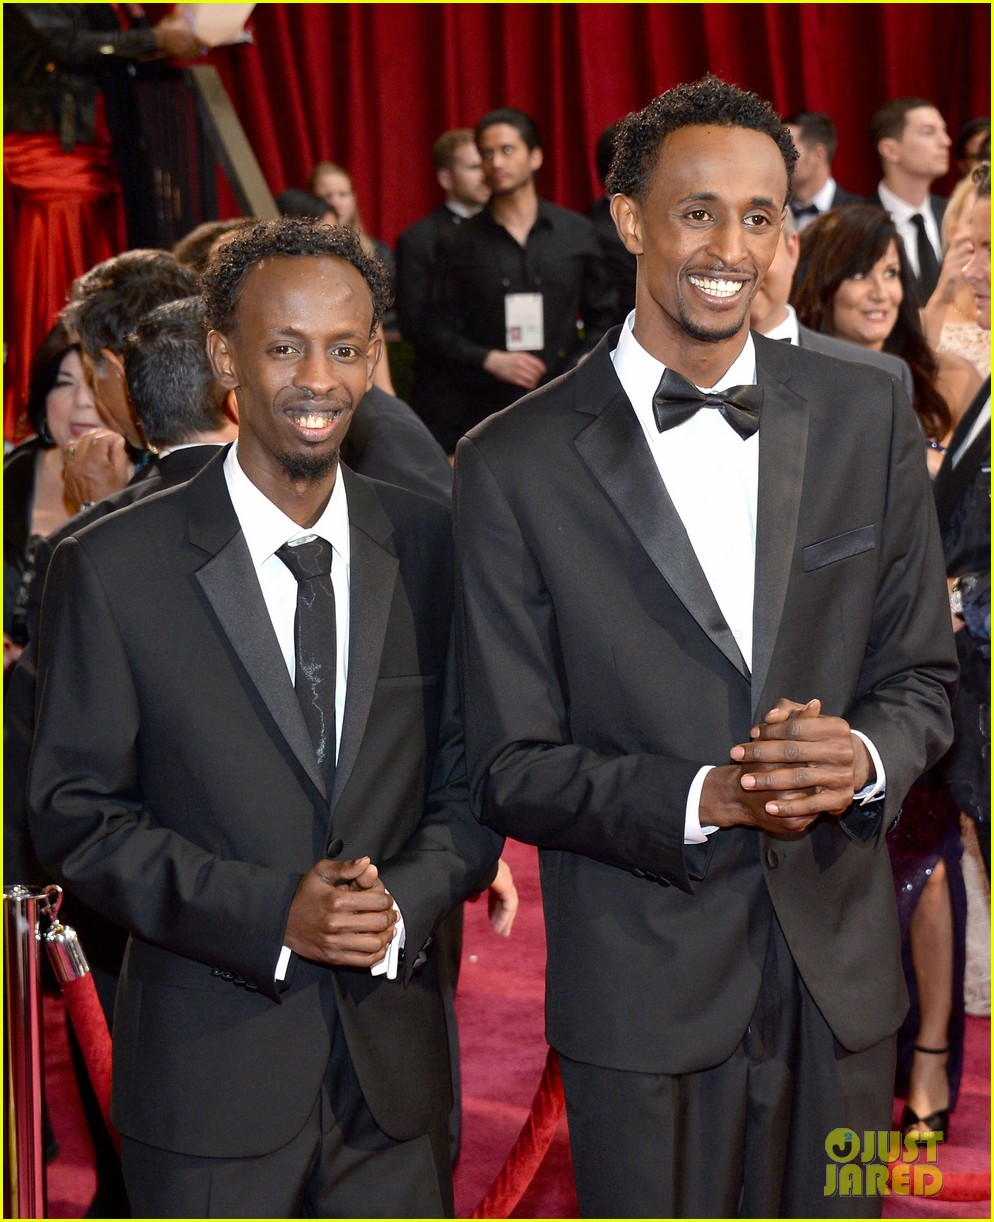 barkhad abdi is the captain now at oscars 2014 red carpet 013063931